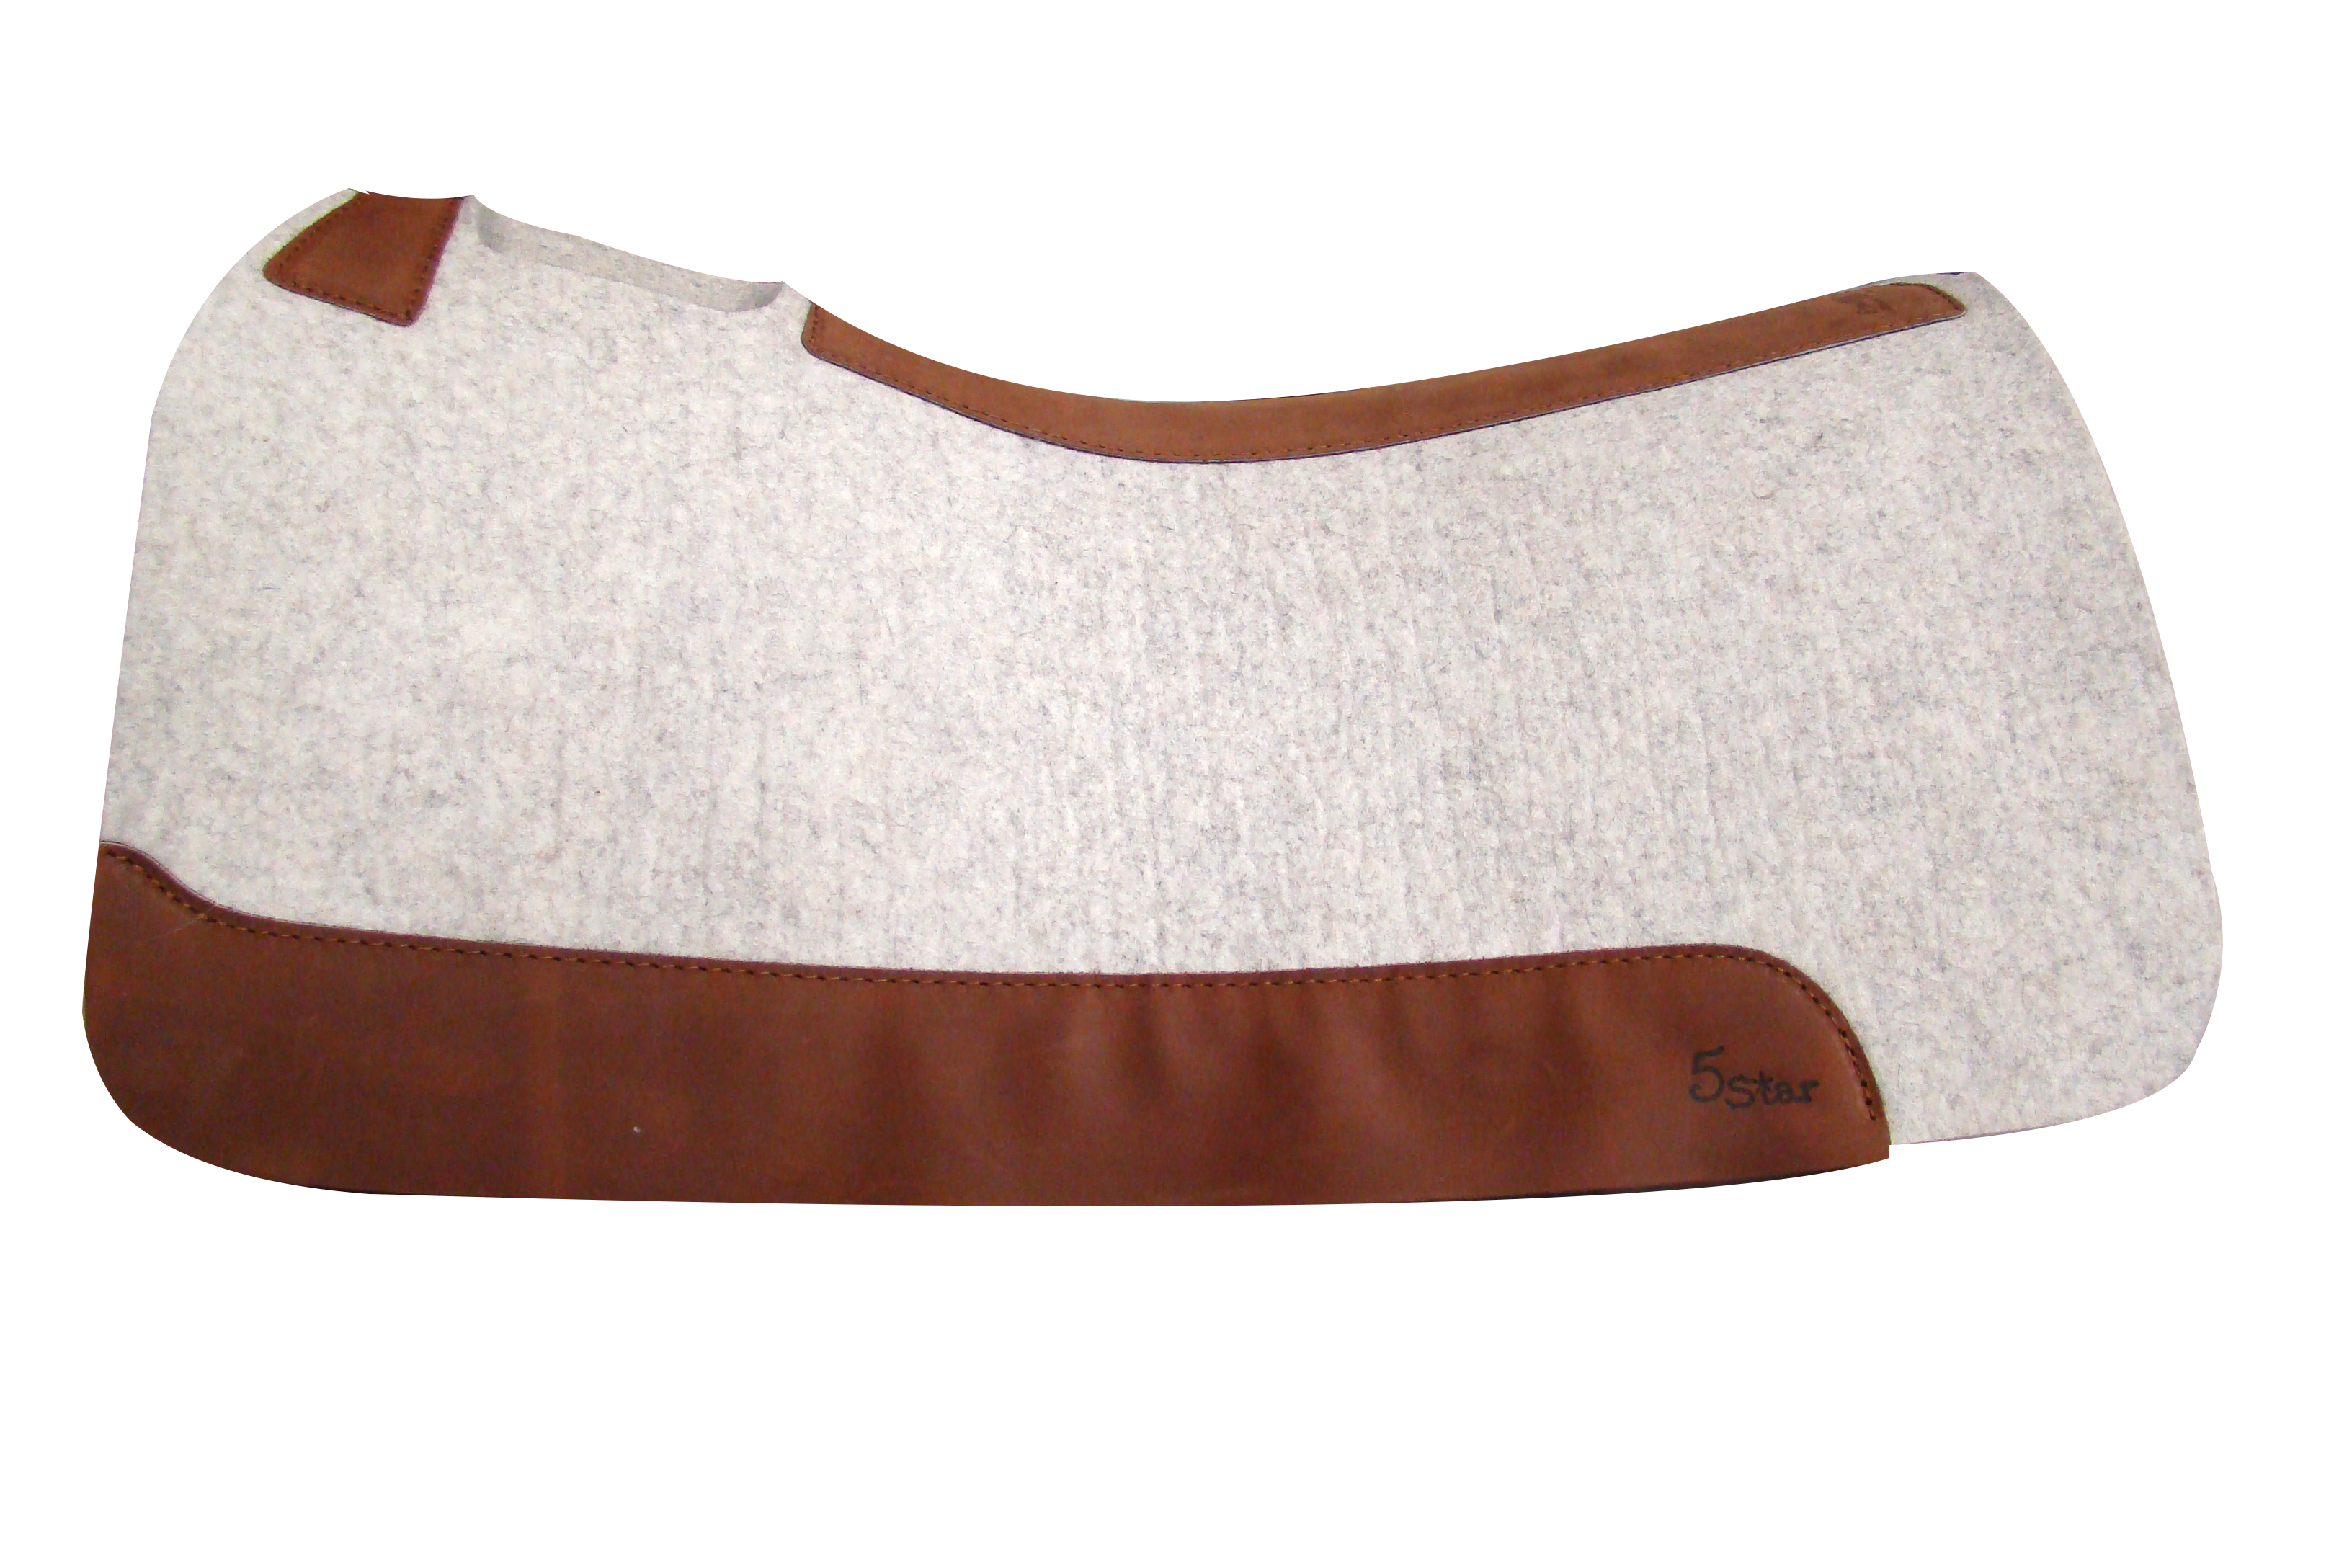 The All Around Saddle Pad in Natural.             5 Star contoured western saddle pads are top quality, pressed, high density 100% WOOL FELT is the base pad component, with 5-6 oz. wear leathers on the sides and top line. This wool felt is manufactured to strict specifications, using the highest quality virgin wool (90%), blended with re-combed wool (10%) which allows for the highest degree of protection and economic benefit.